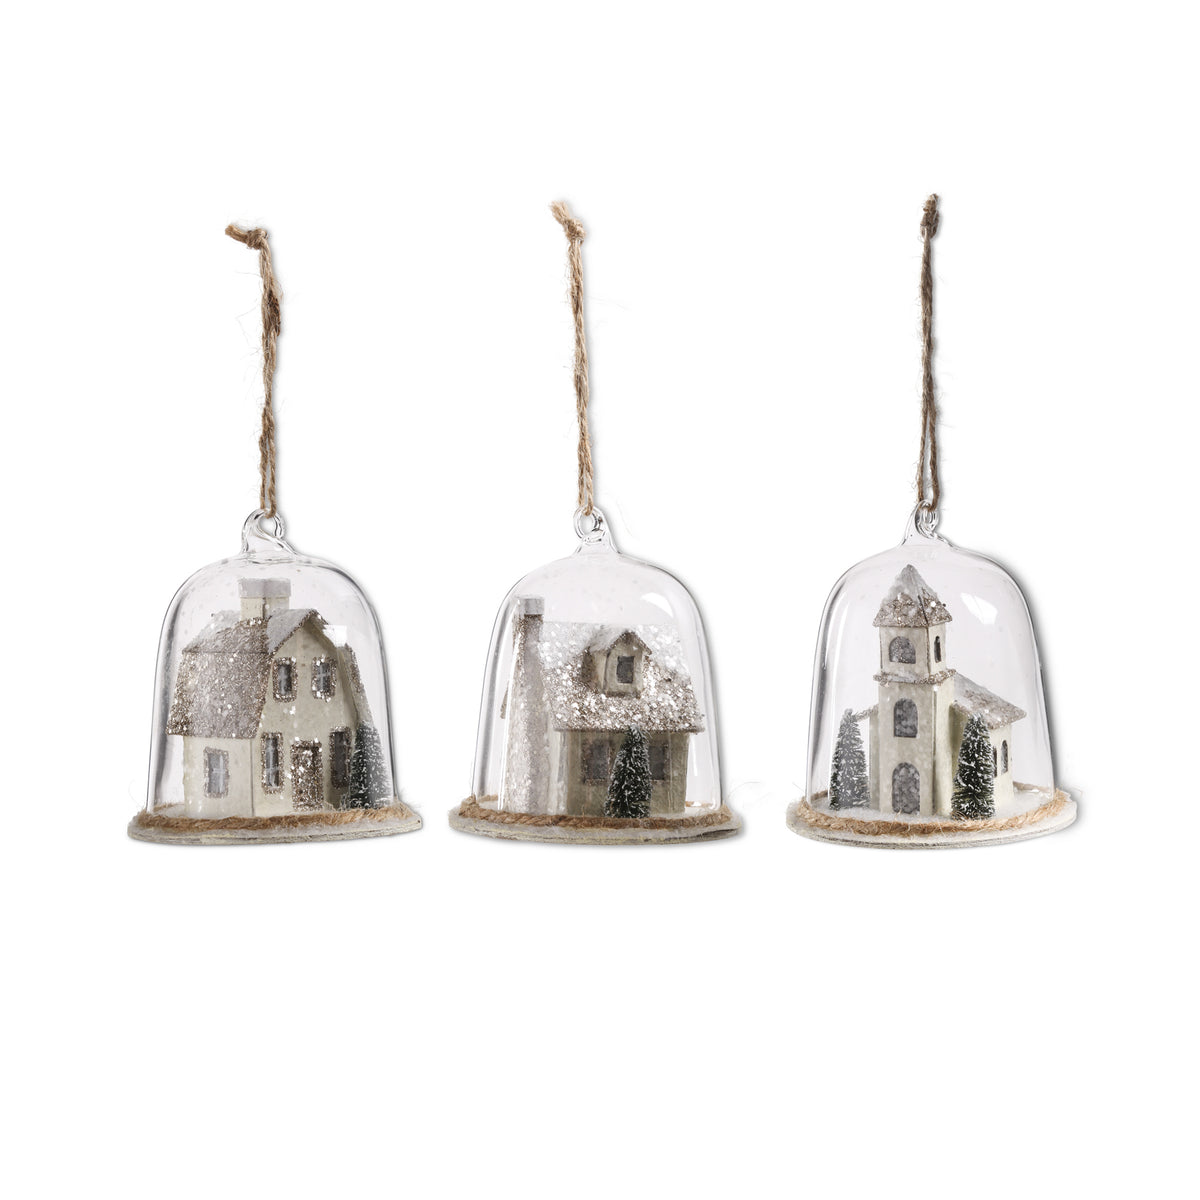 Glass Dome Ornaments with Houses Inside